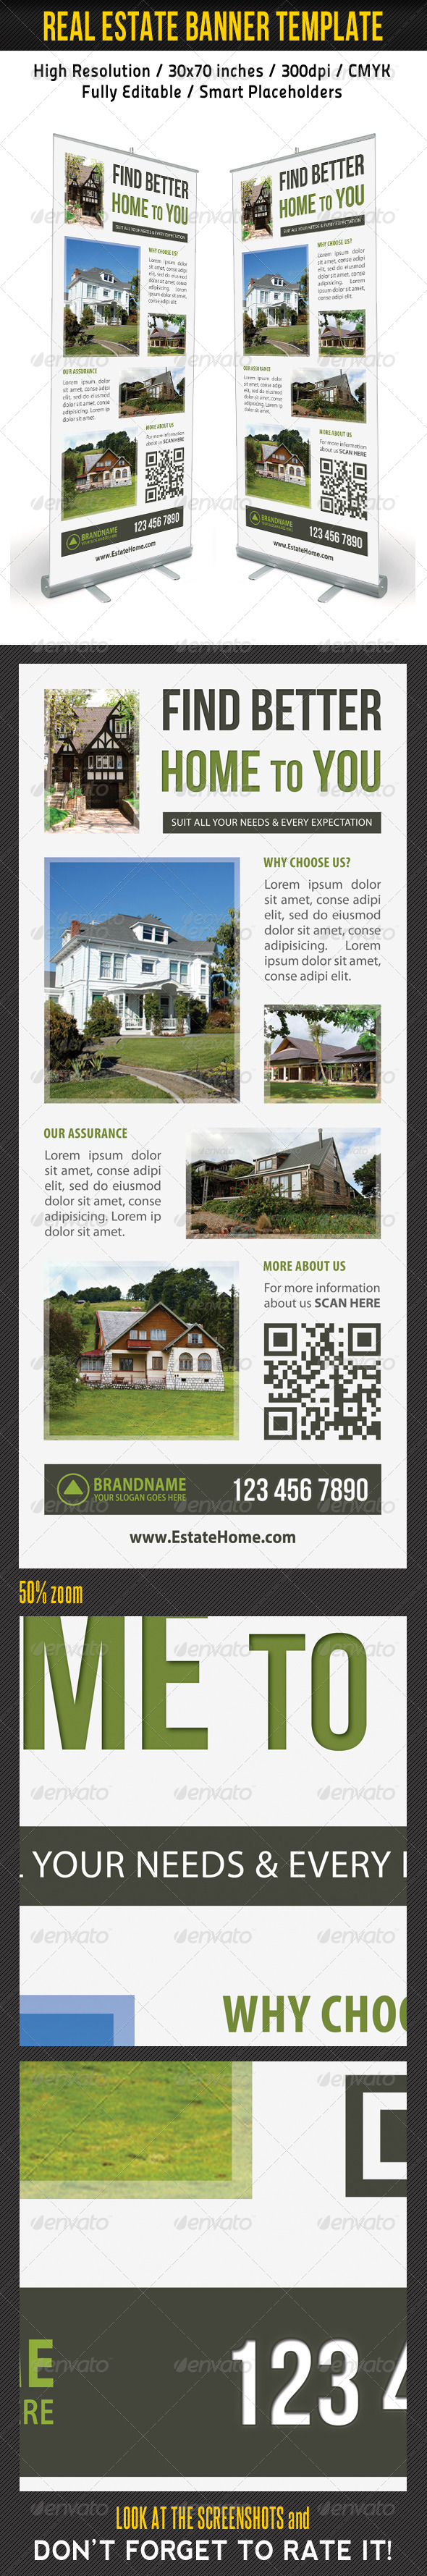 GraphicRiver Real Estate Banner Template 10 7332503